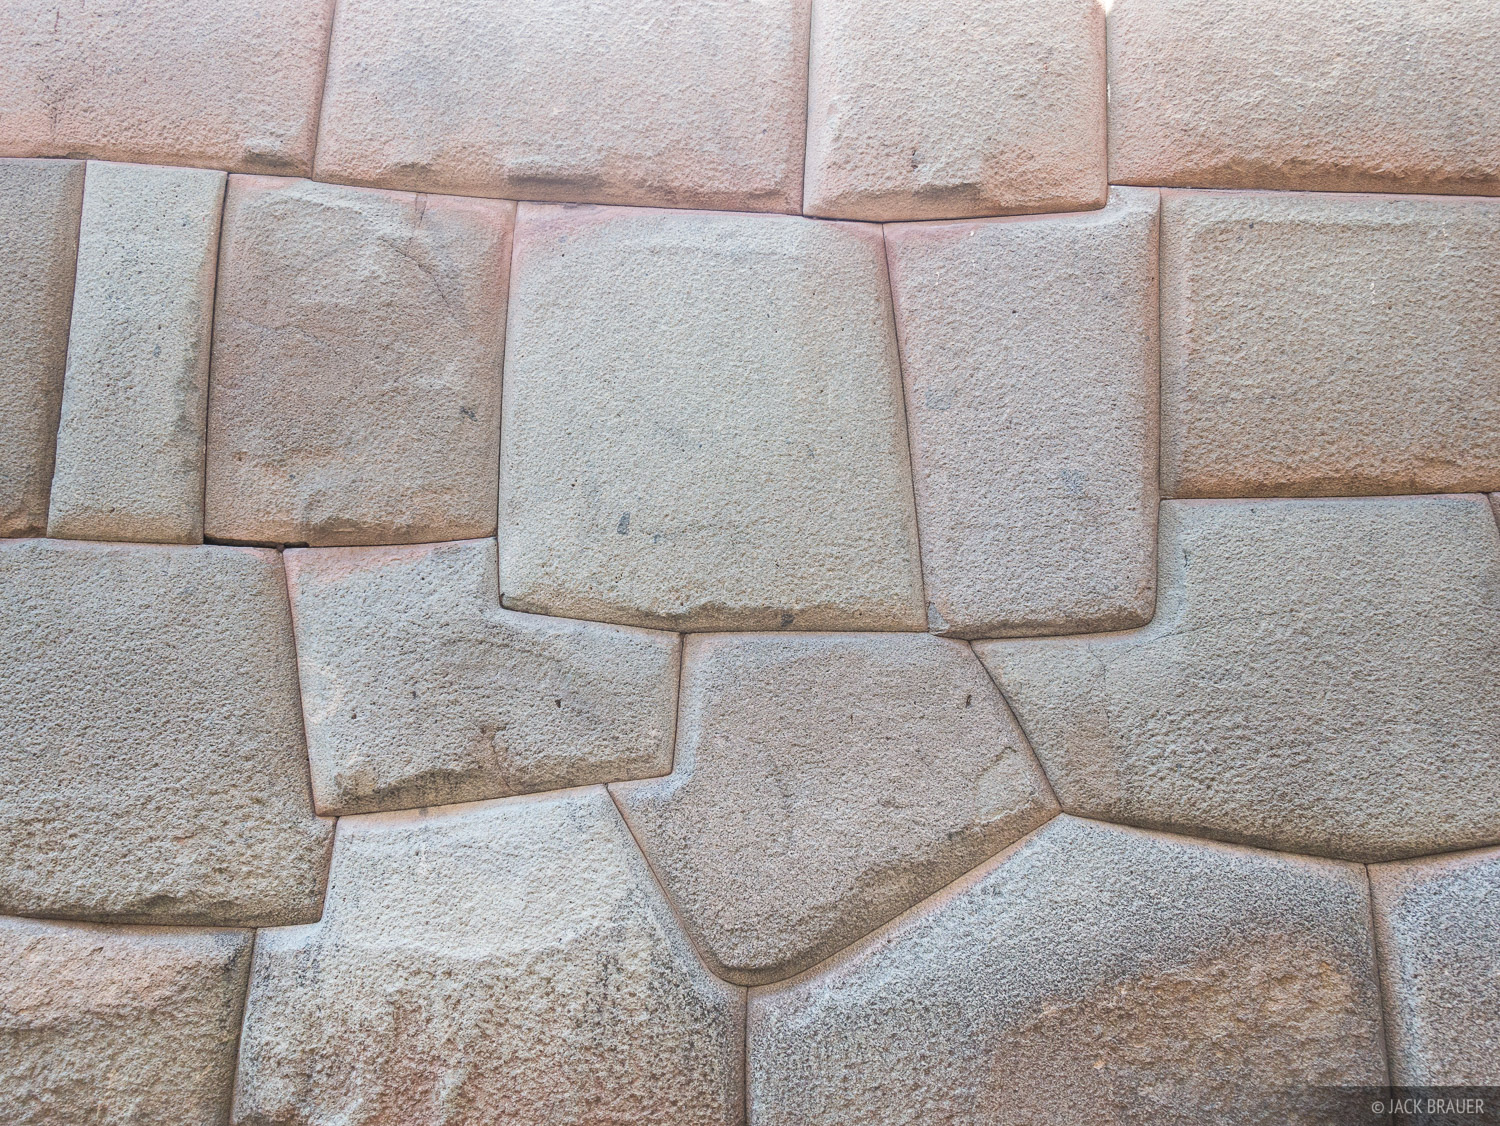 An example of the incredibly precise craftsmanship of Incan rockwork, as seen in Cusco. Huge granite stones are perfectly fitted...